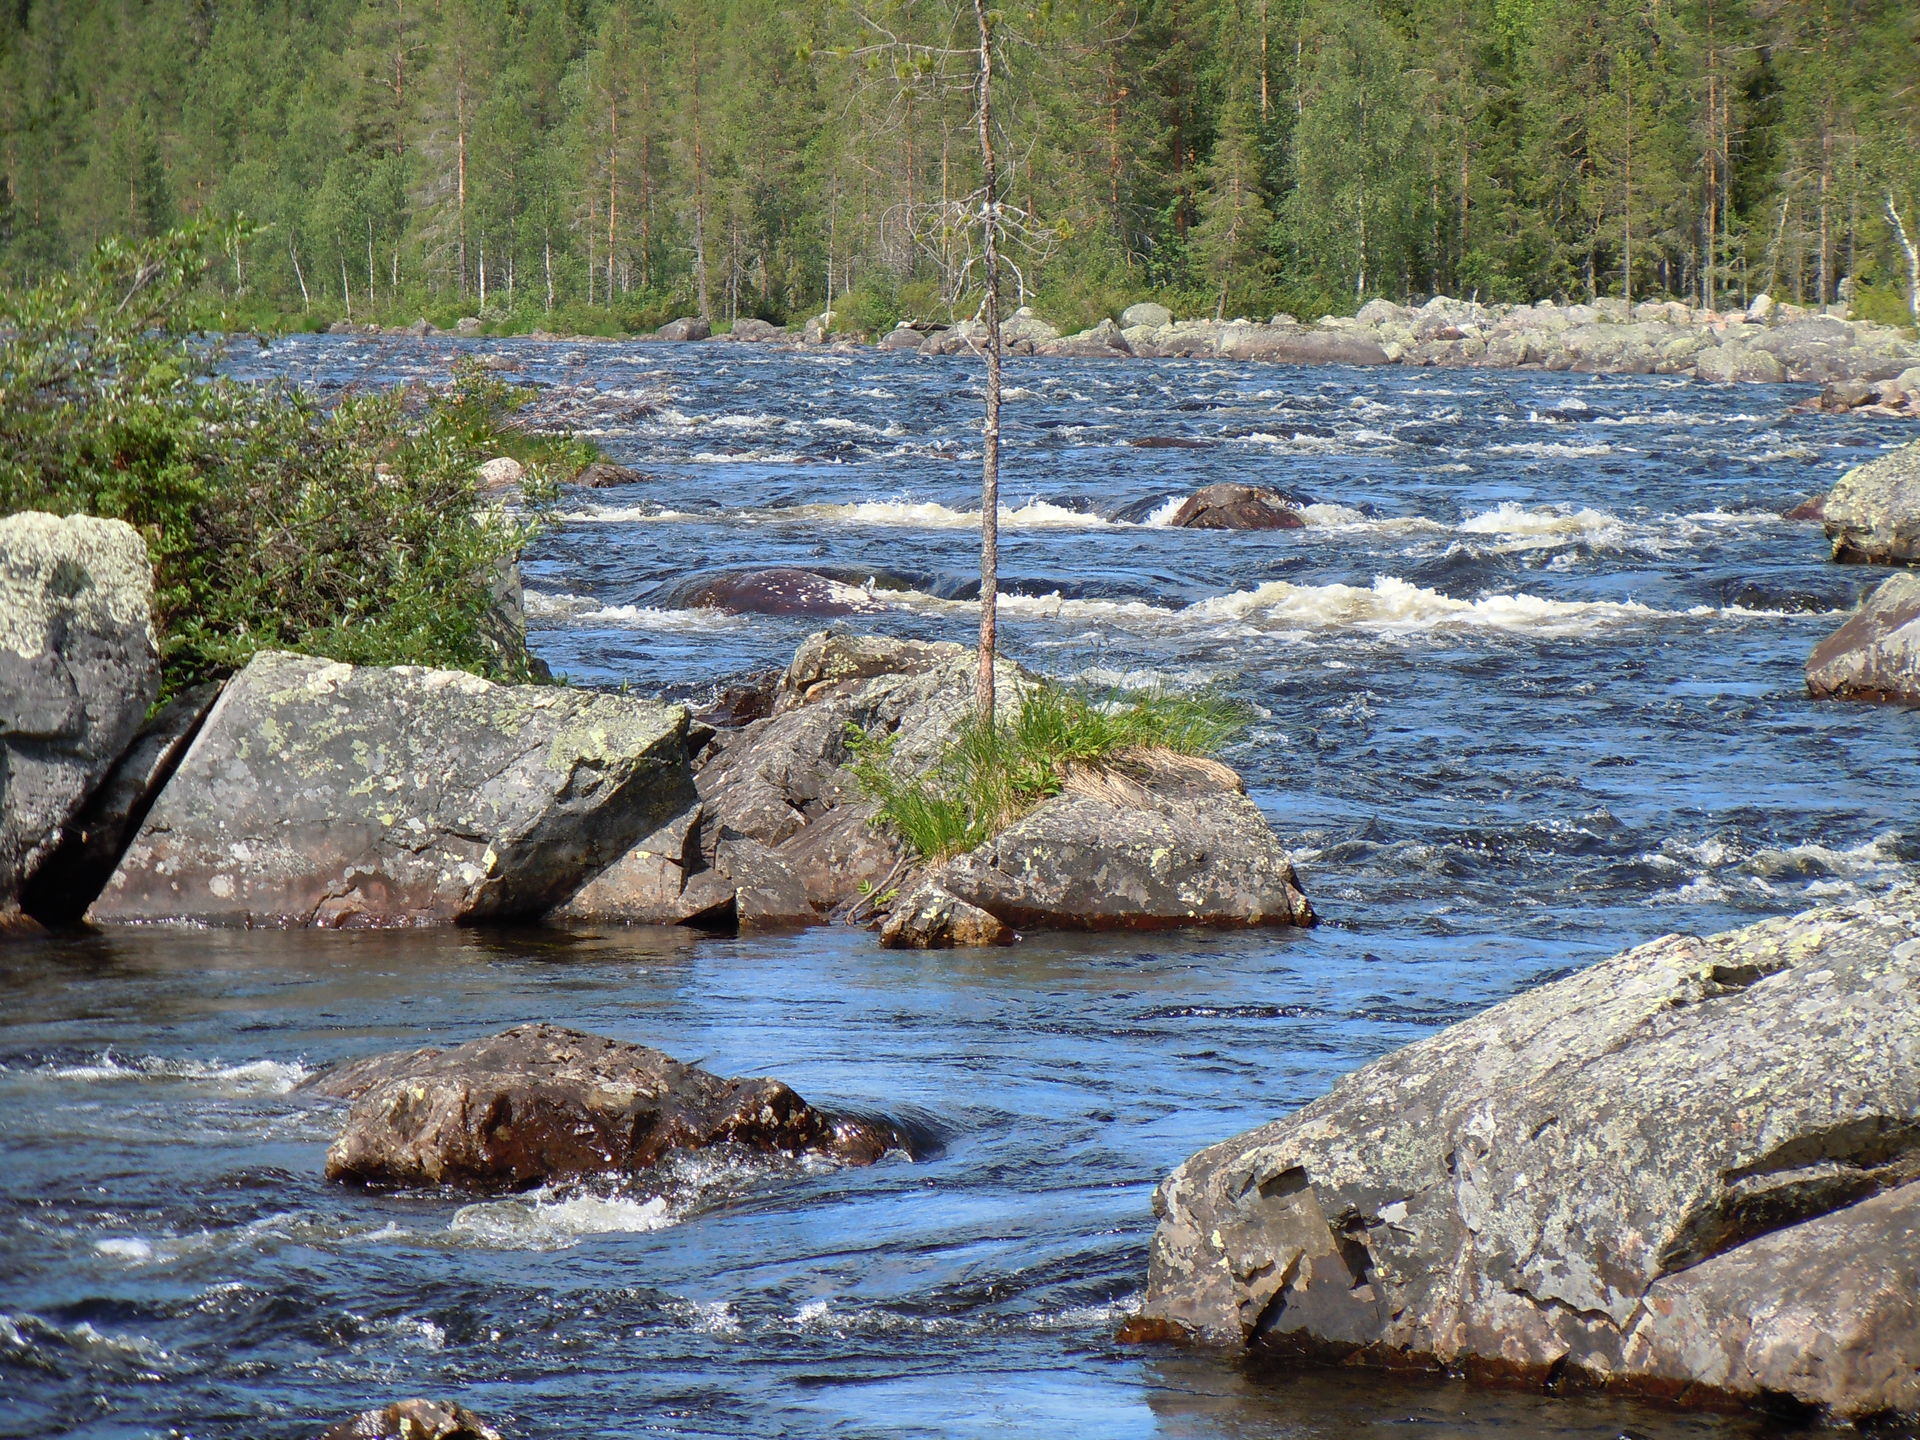 Fly fish at Wilderness Life fishing camp in Lapland